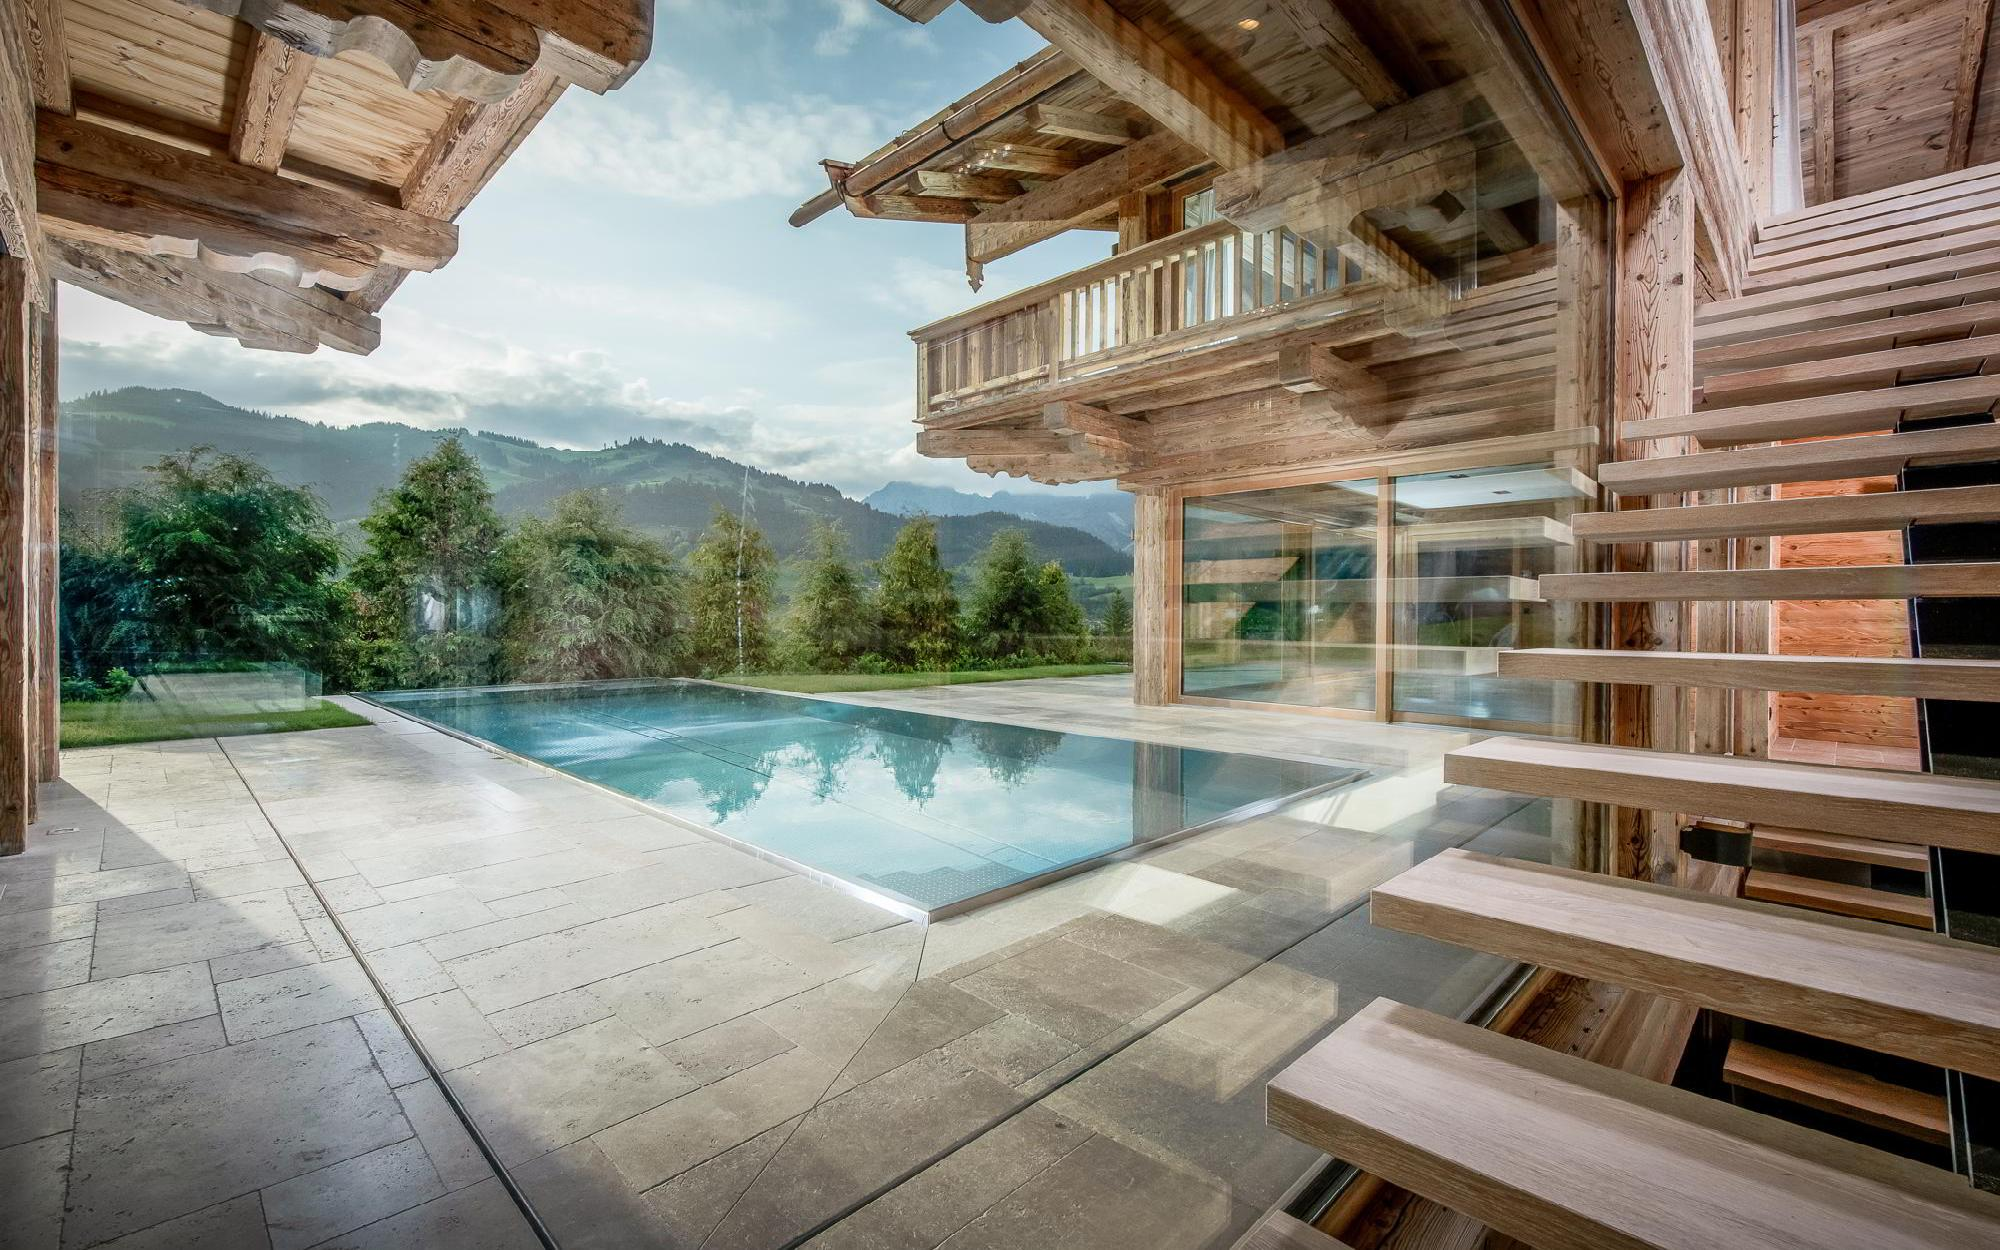 Luxury Designer Chalet in famous Alpine region for Sale - Tirol - Austria